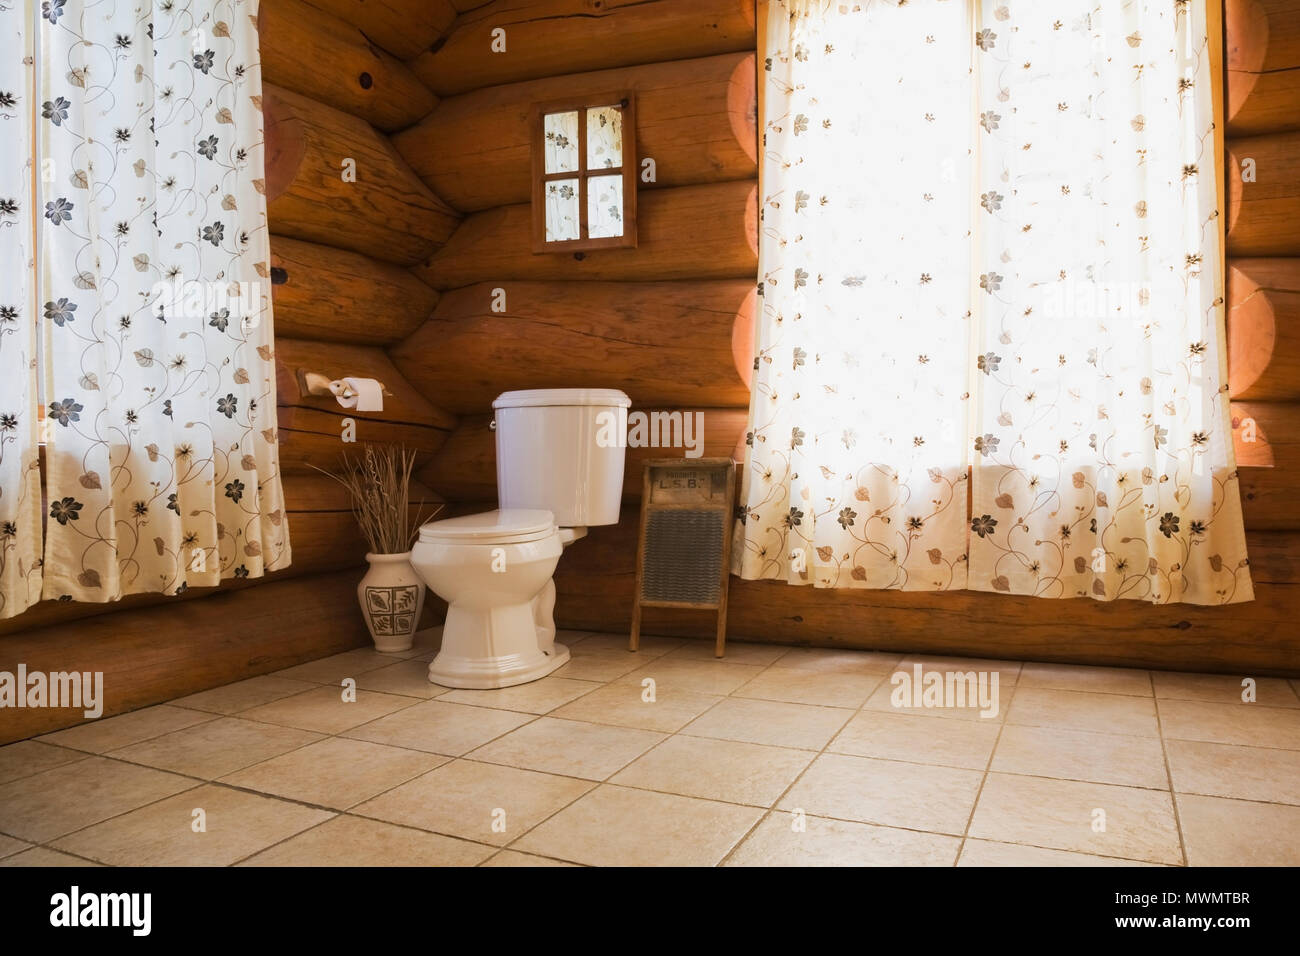 Toilet in corner of main bathroom inside a cottage style log home ...